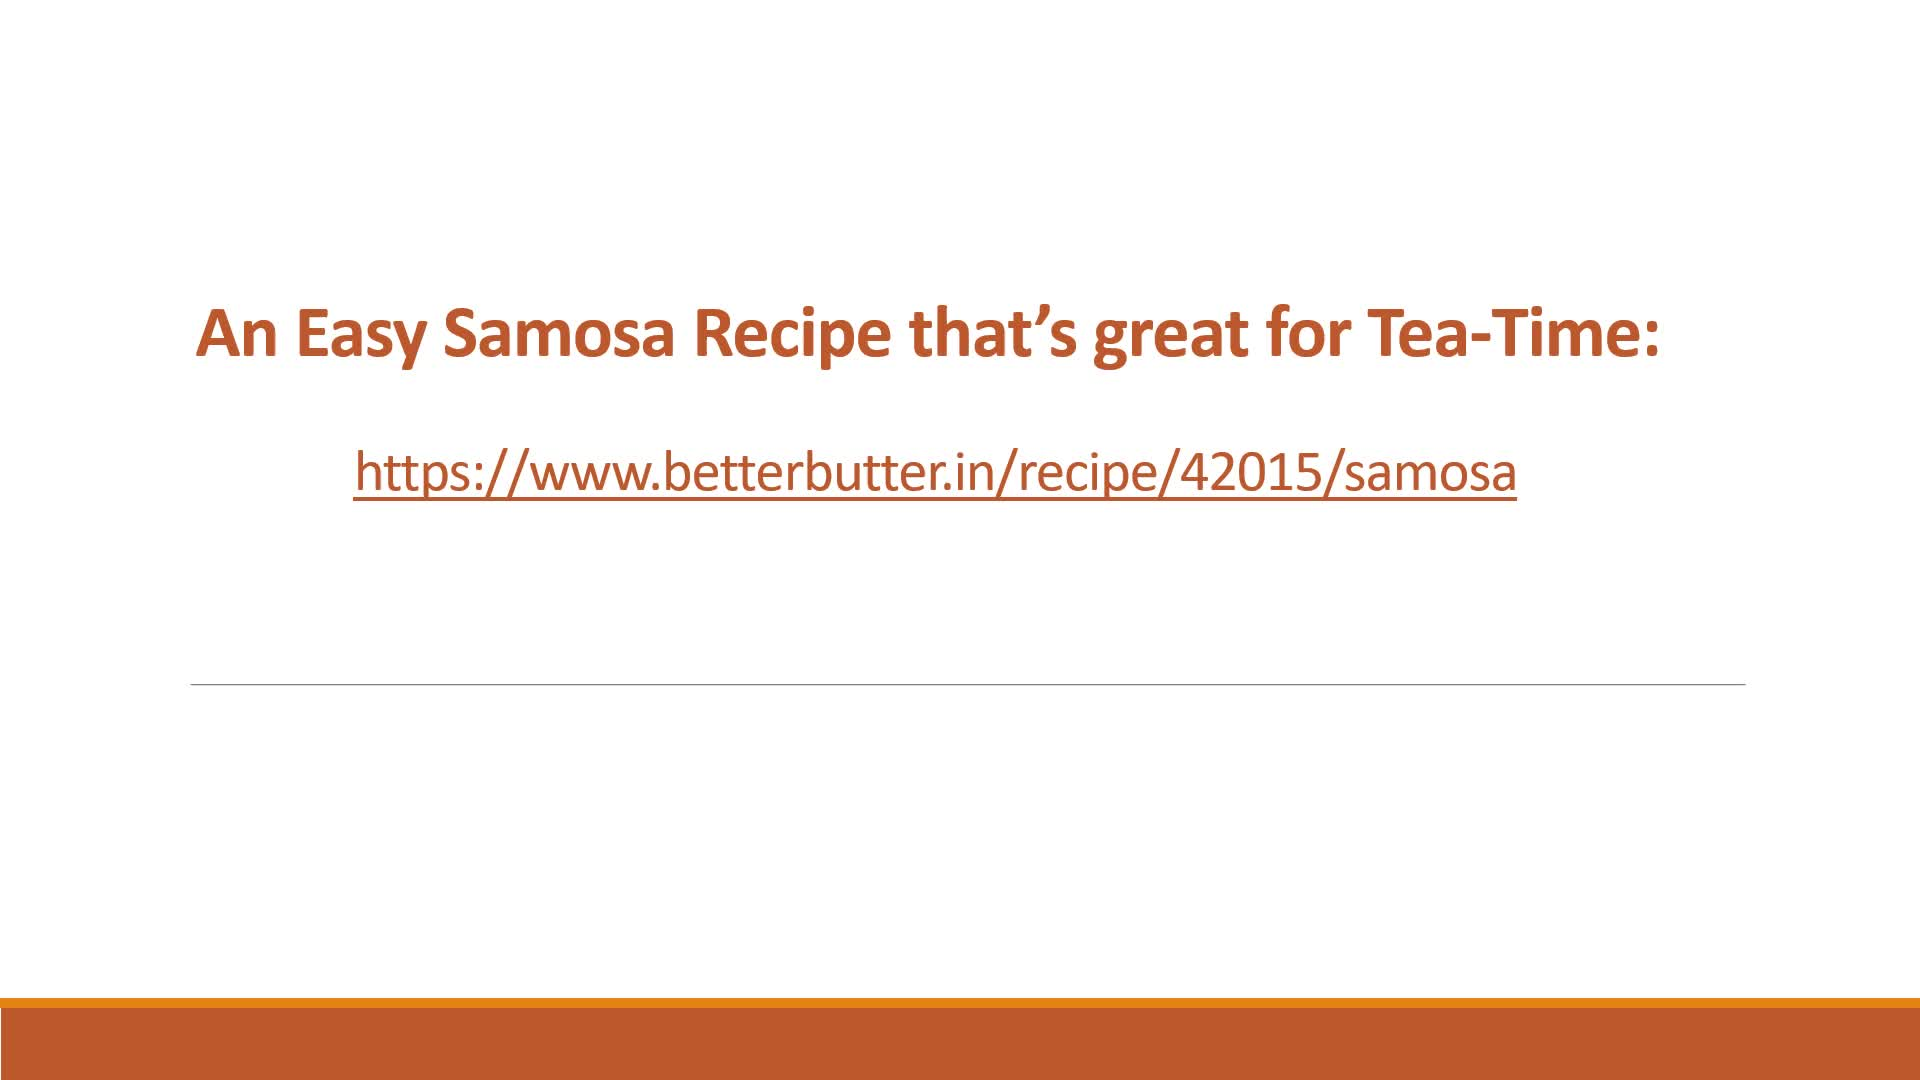 An Easy Samosa Recipe